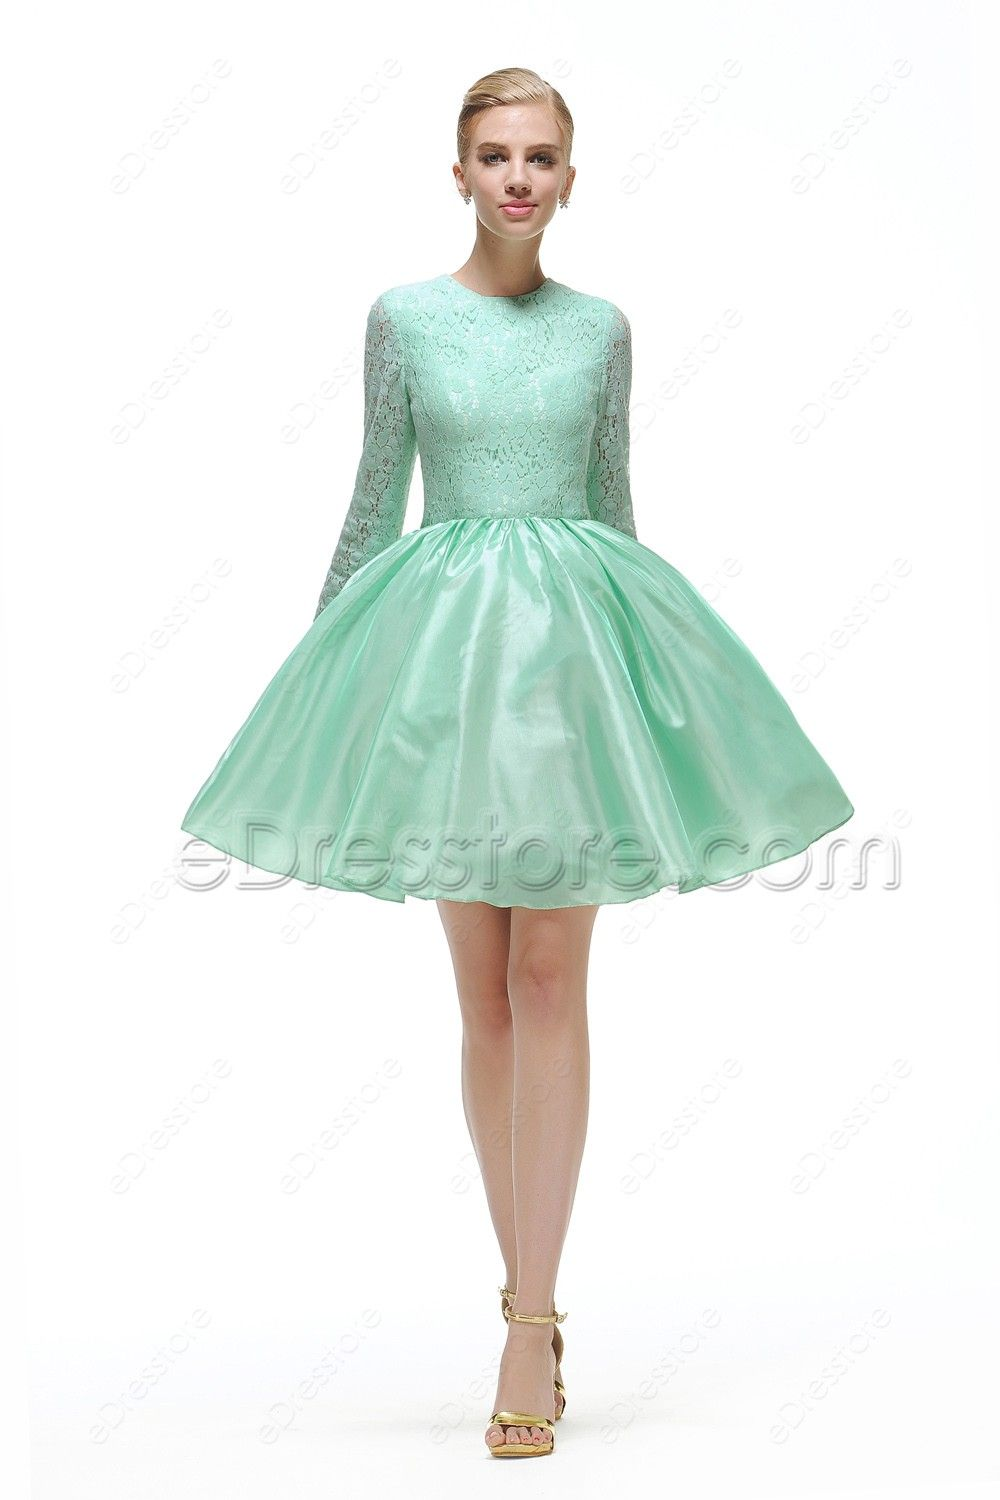 cf80430ce7c The mint green short prom dress is made of lace and taffeta fabric